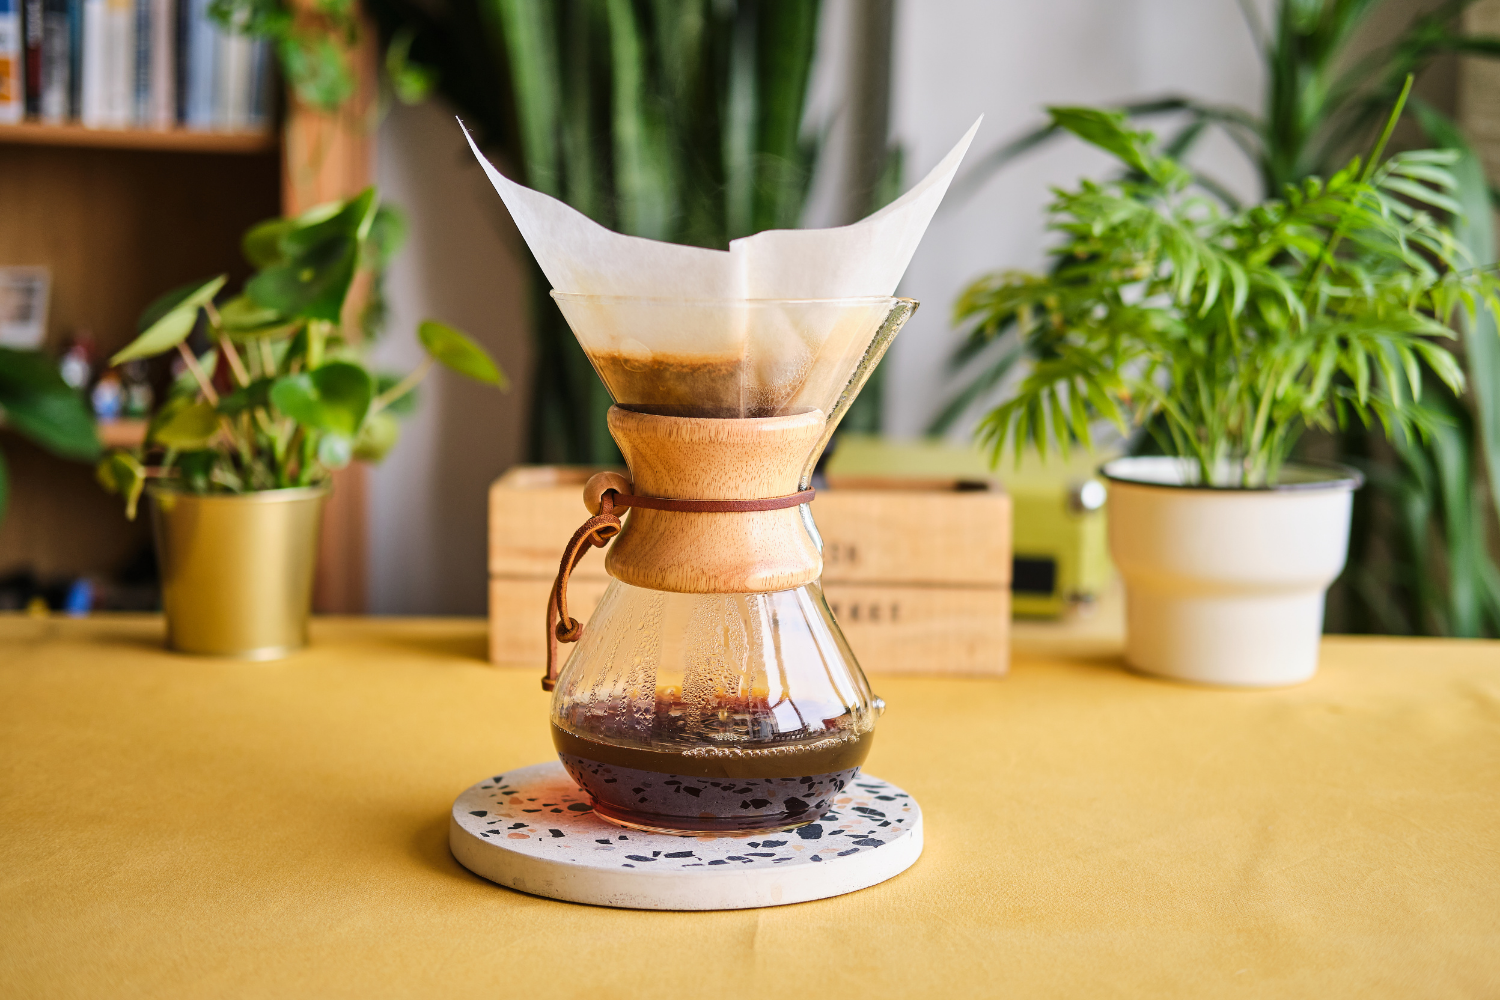 Grind for chemex feature